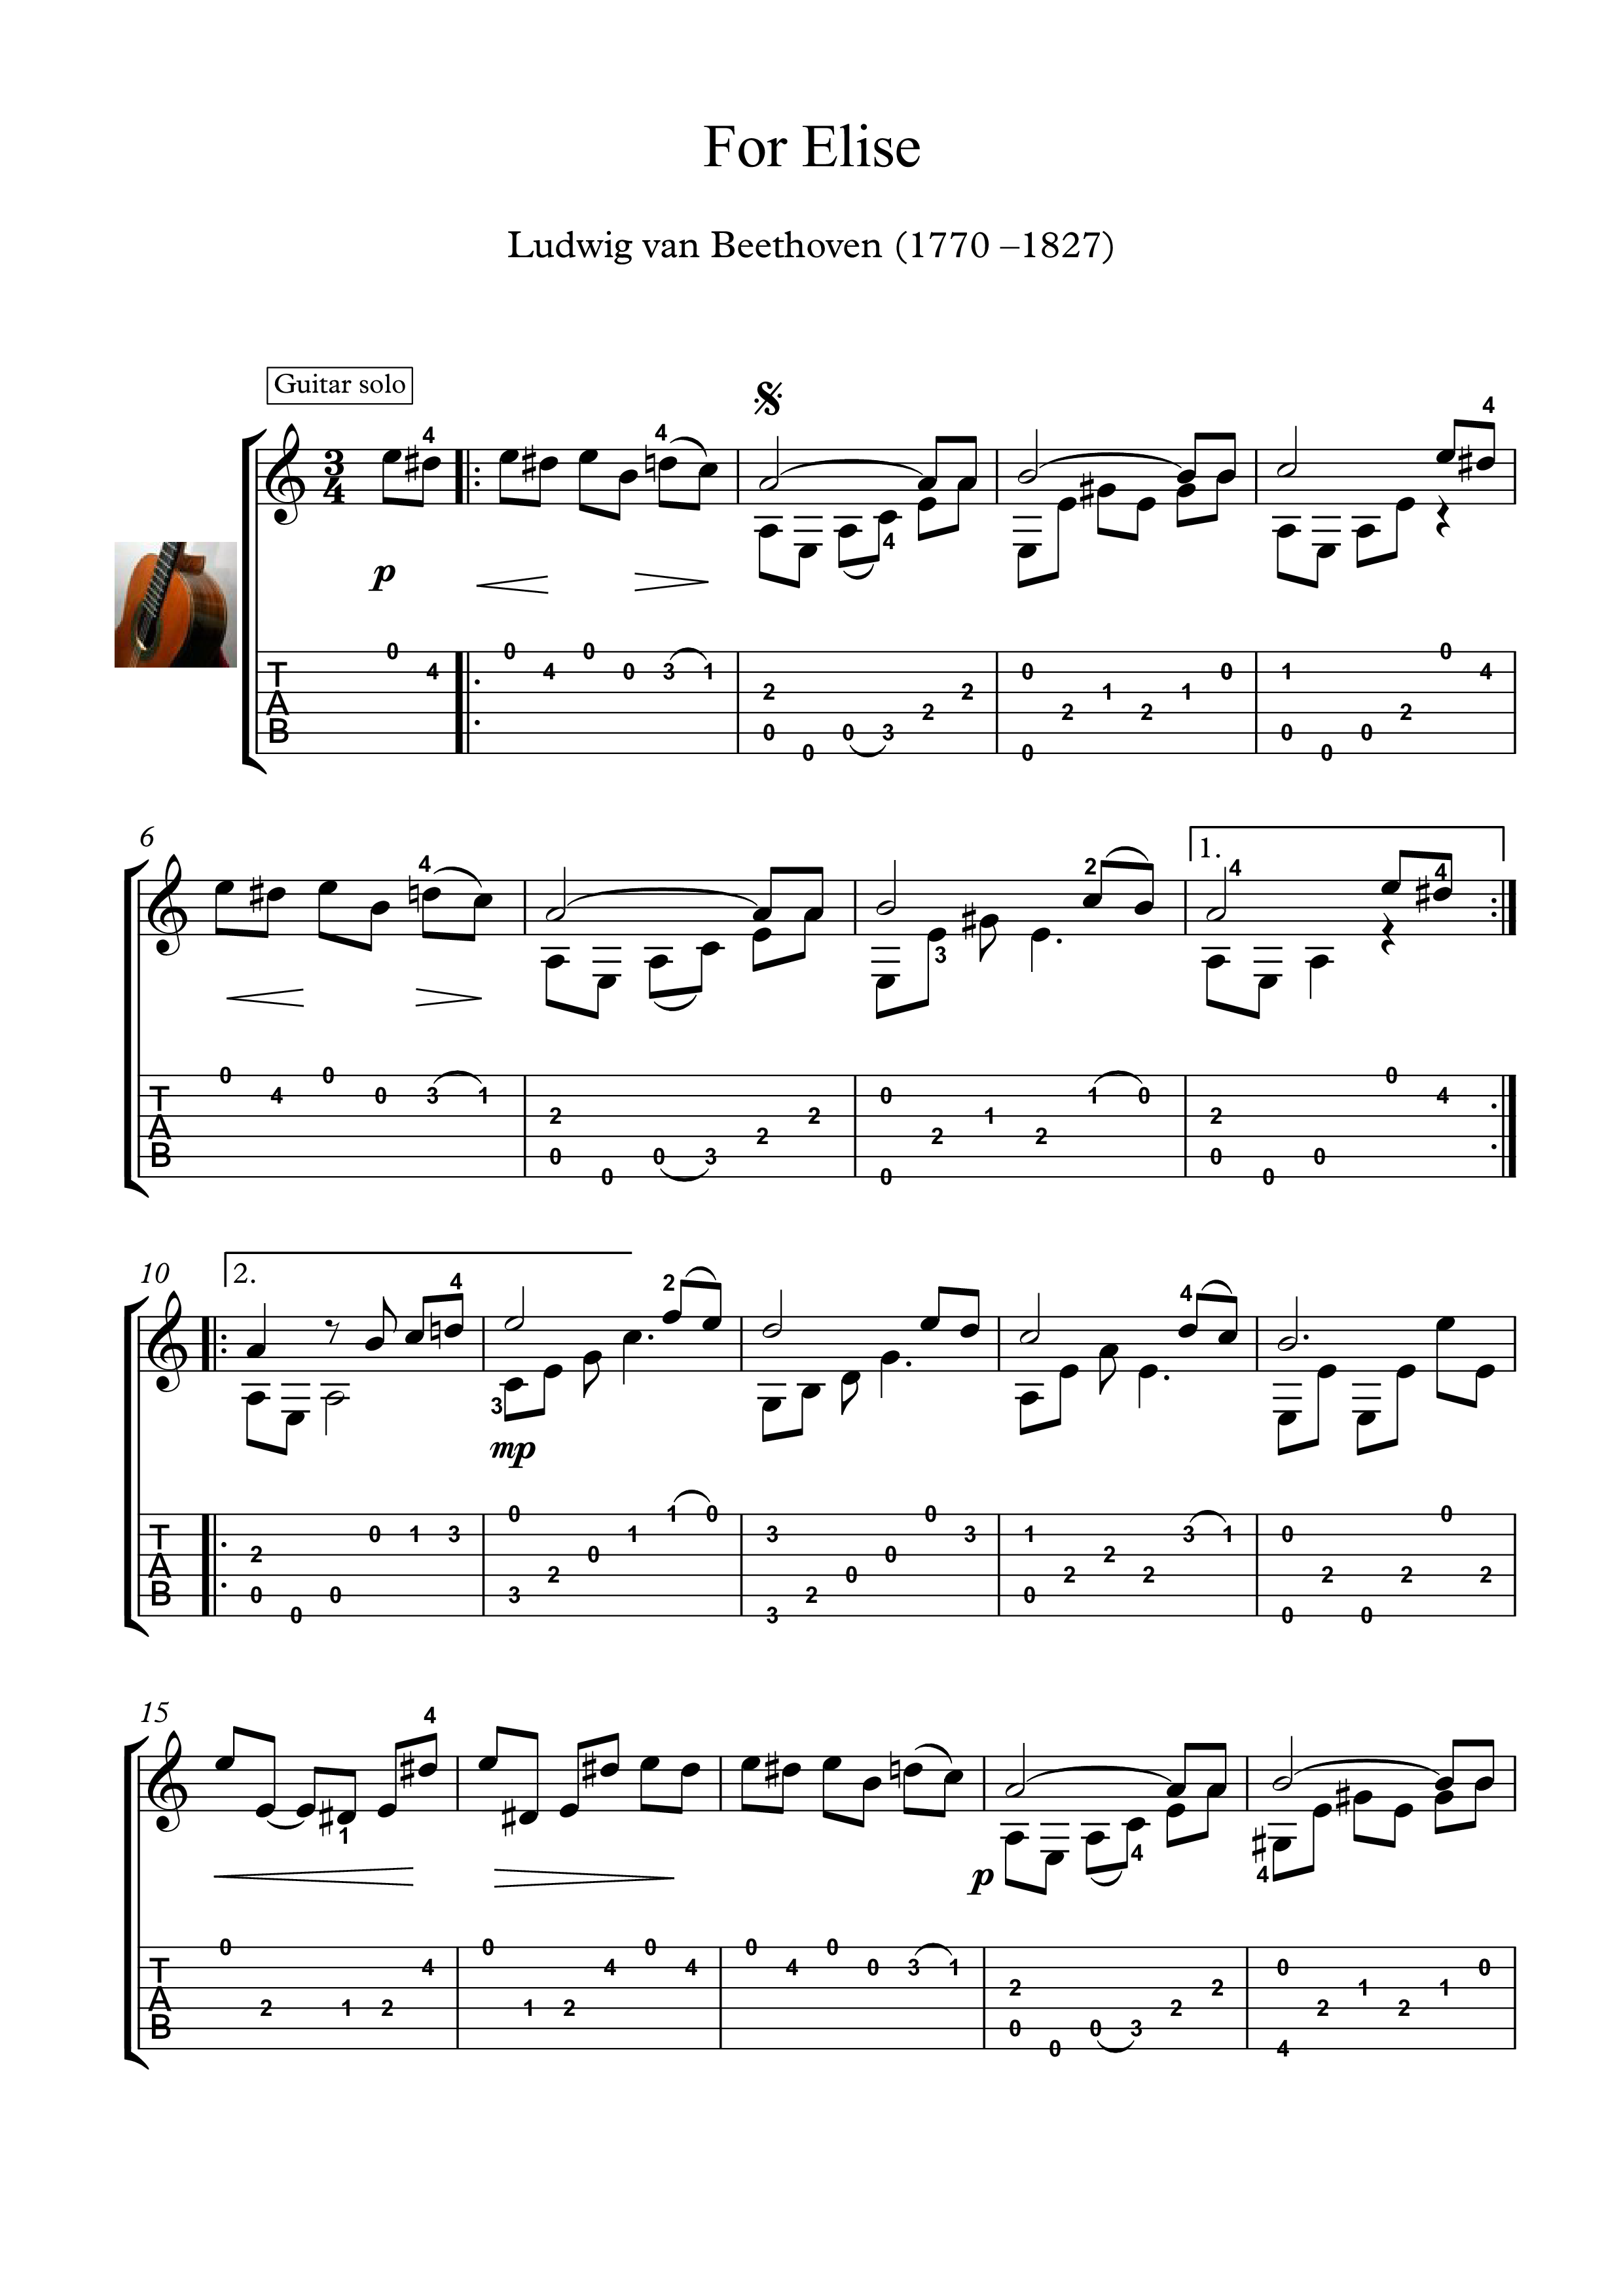 For Elise Guitar solo sheet music Fur Elise, arranged for classical